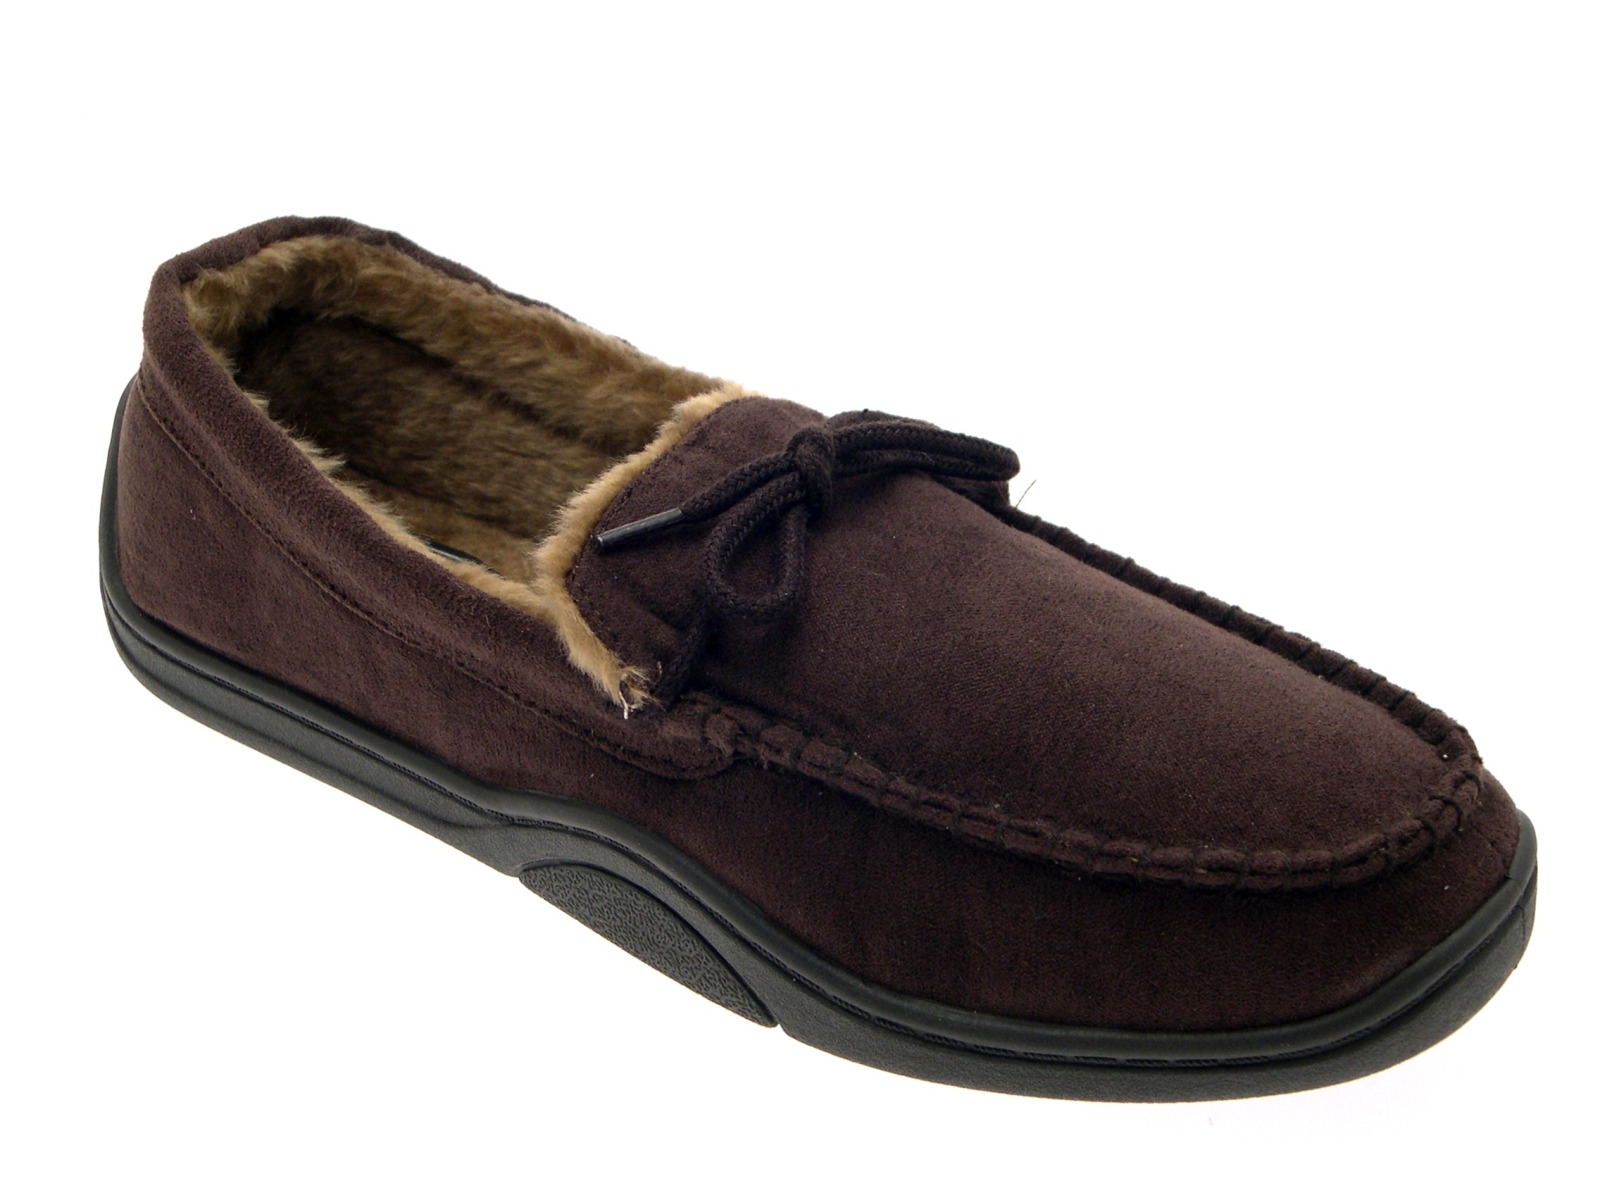 Winter Moccasins